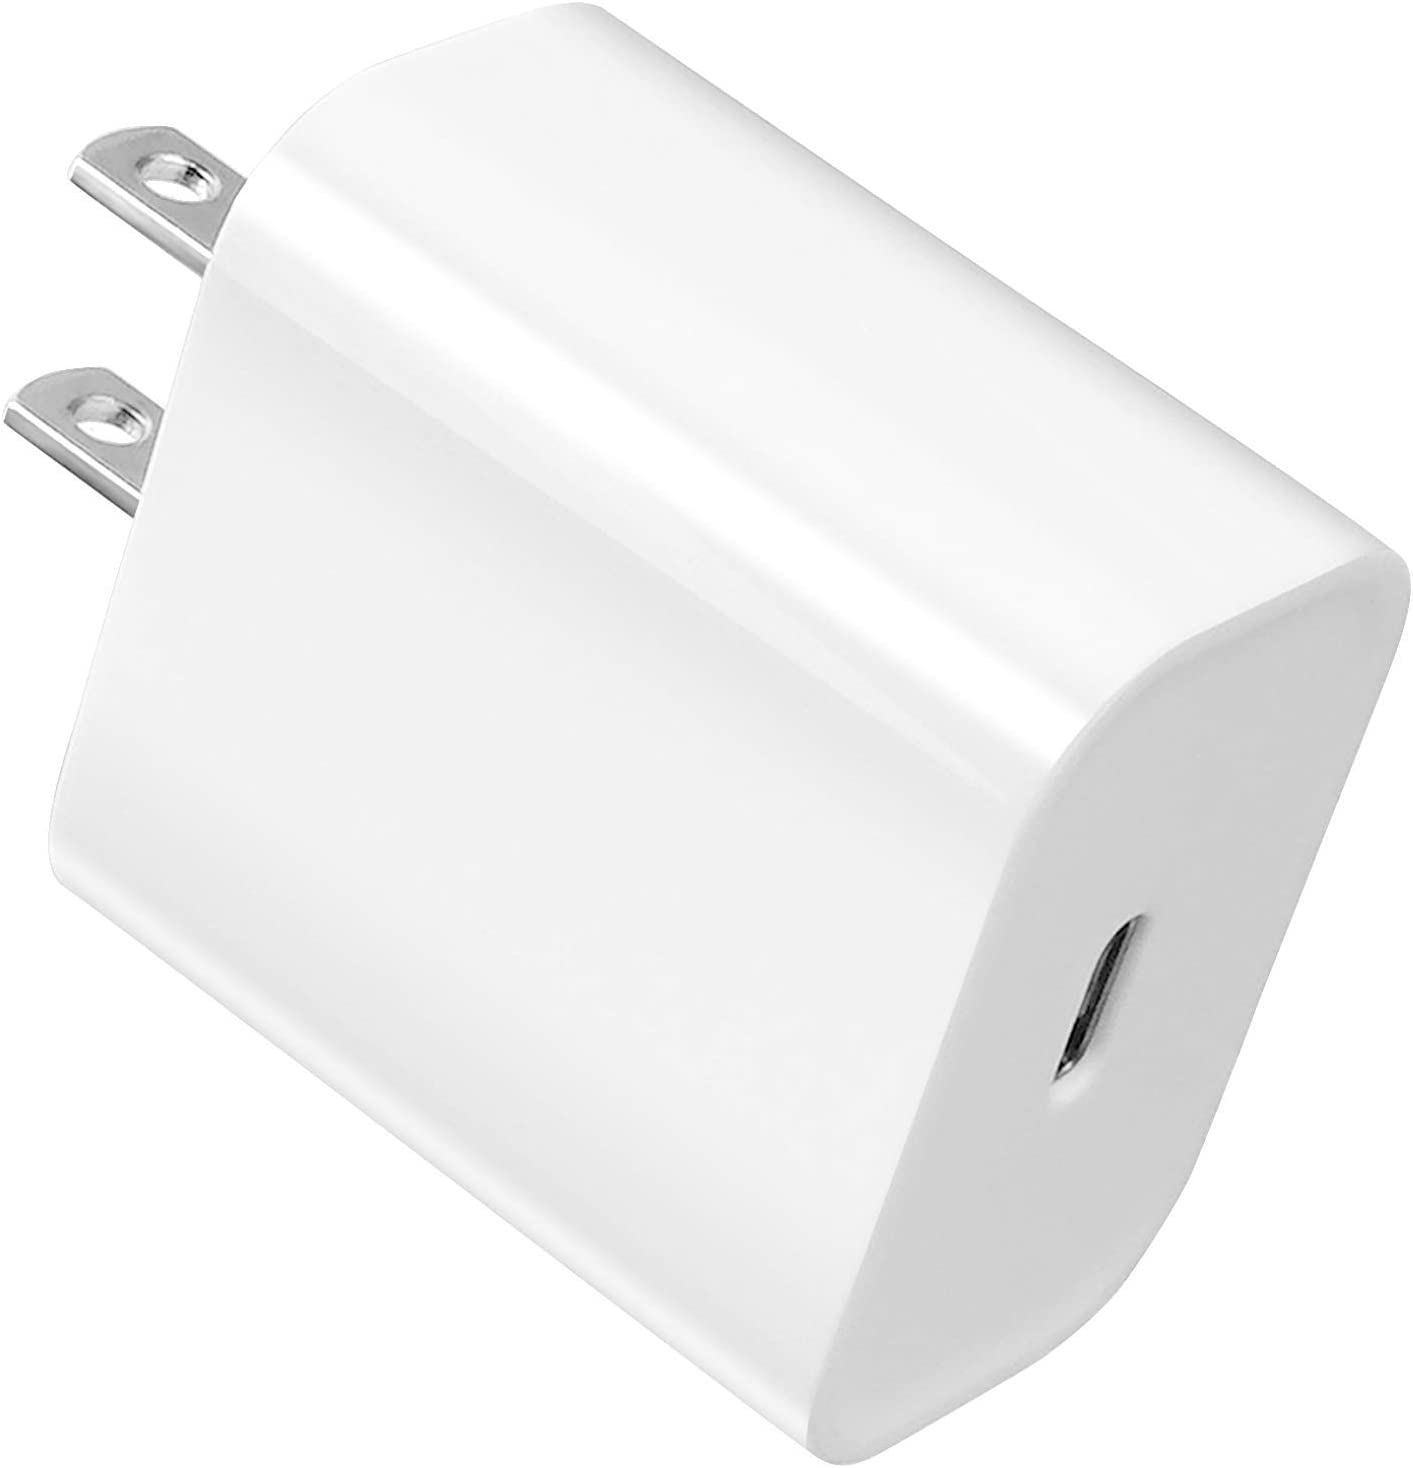 20W PD USB-C Power Adapter Charger for iPhone 12/12Pro/12Pro Max/12Mini/11/XR, Fast USB Type C PD Charger for AirPods Pro, iPad Pro, Pixel 4/3 Charger Block